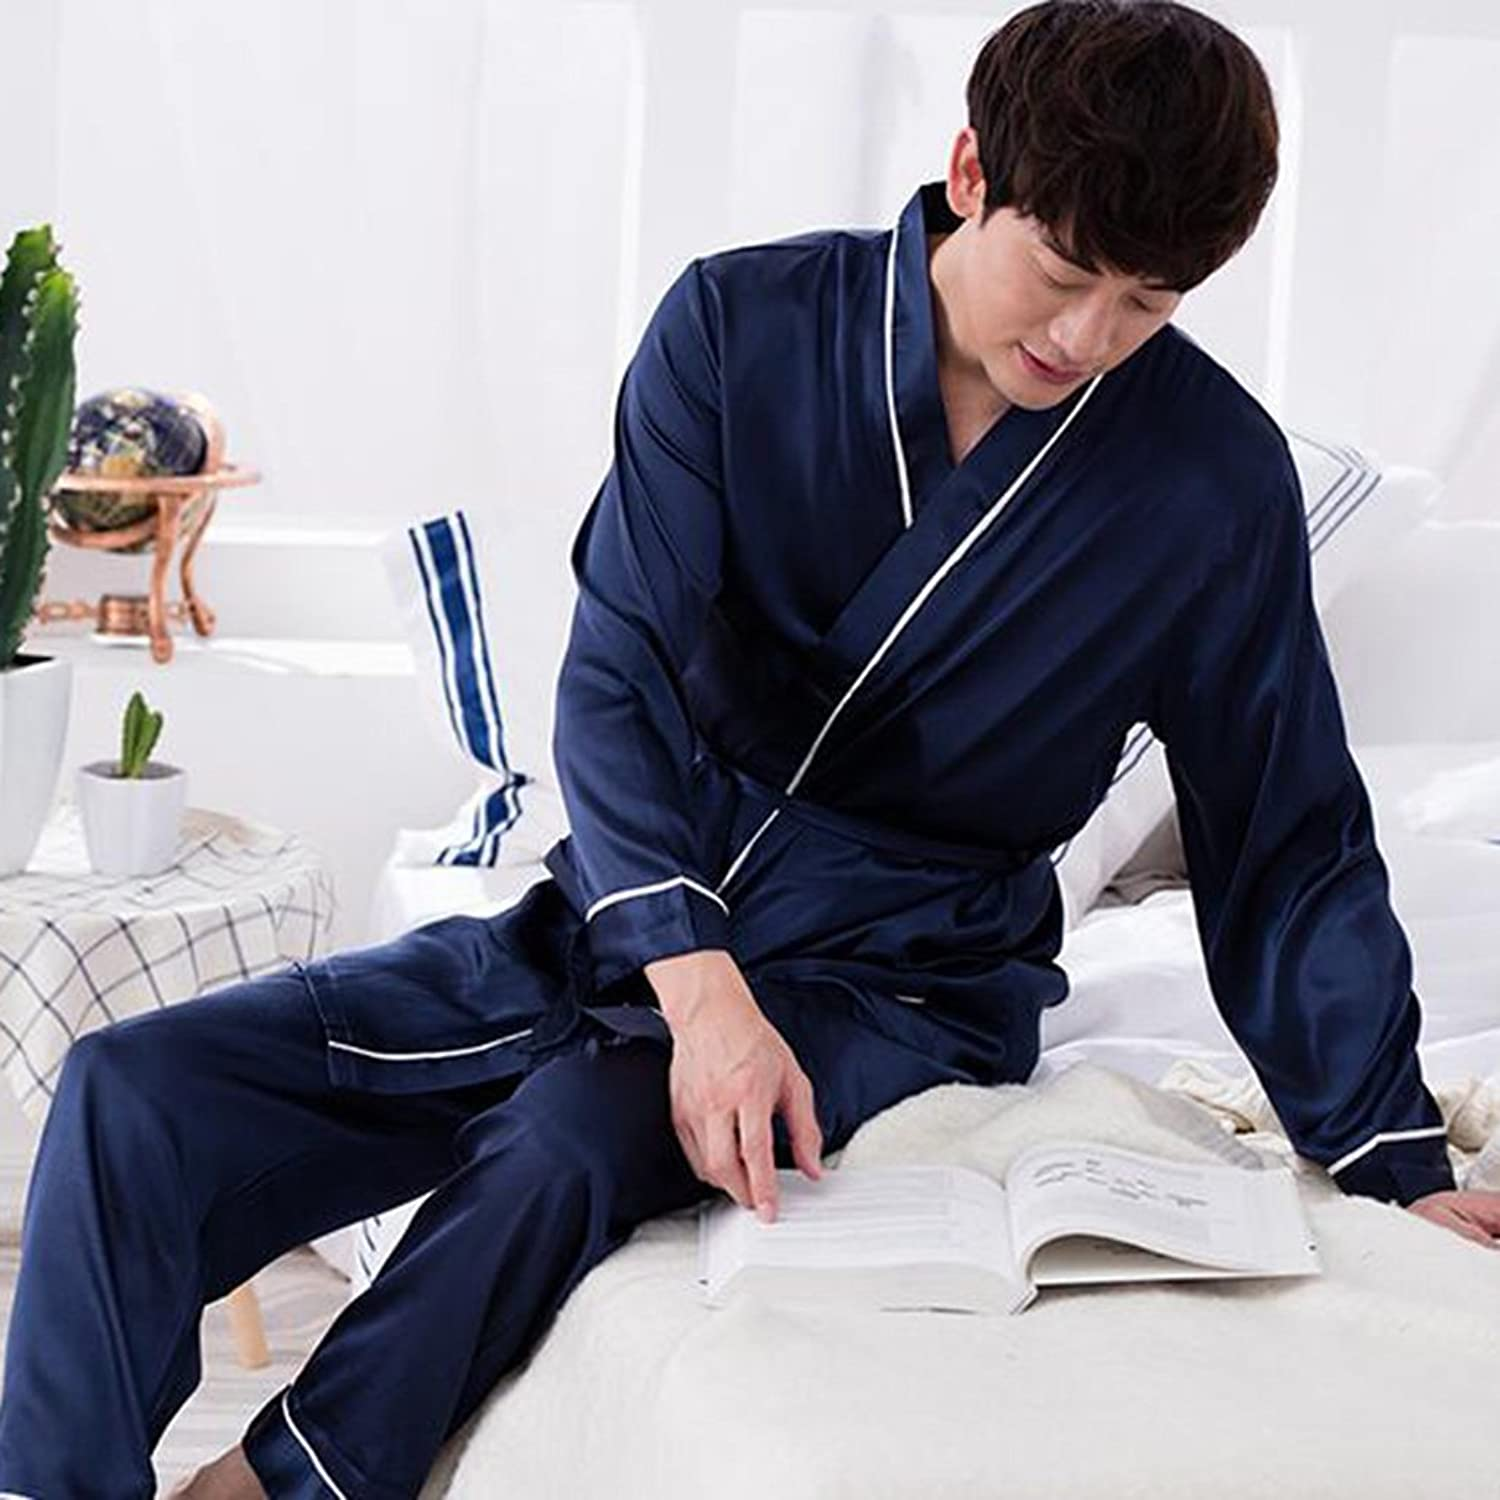 GJM Shop Bathrobes Male Thin Section Spring and Autumn Winter Long Section Nightgown Long Sleeve Top + Long Pants Two Sets Pajamas Sexy Yukata L XL XXL XXXL (Size   XXXL)